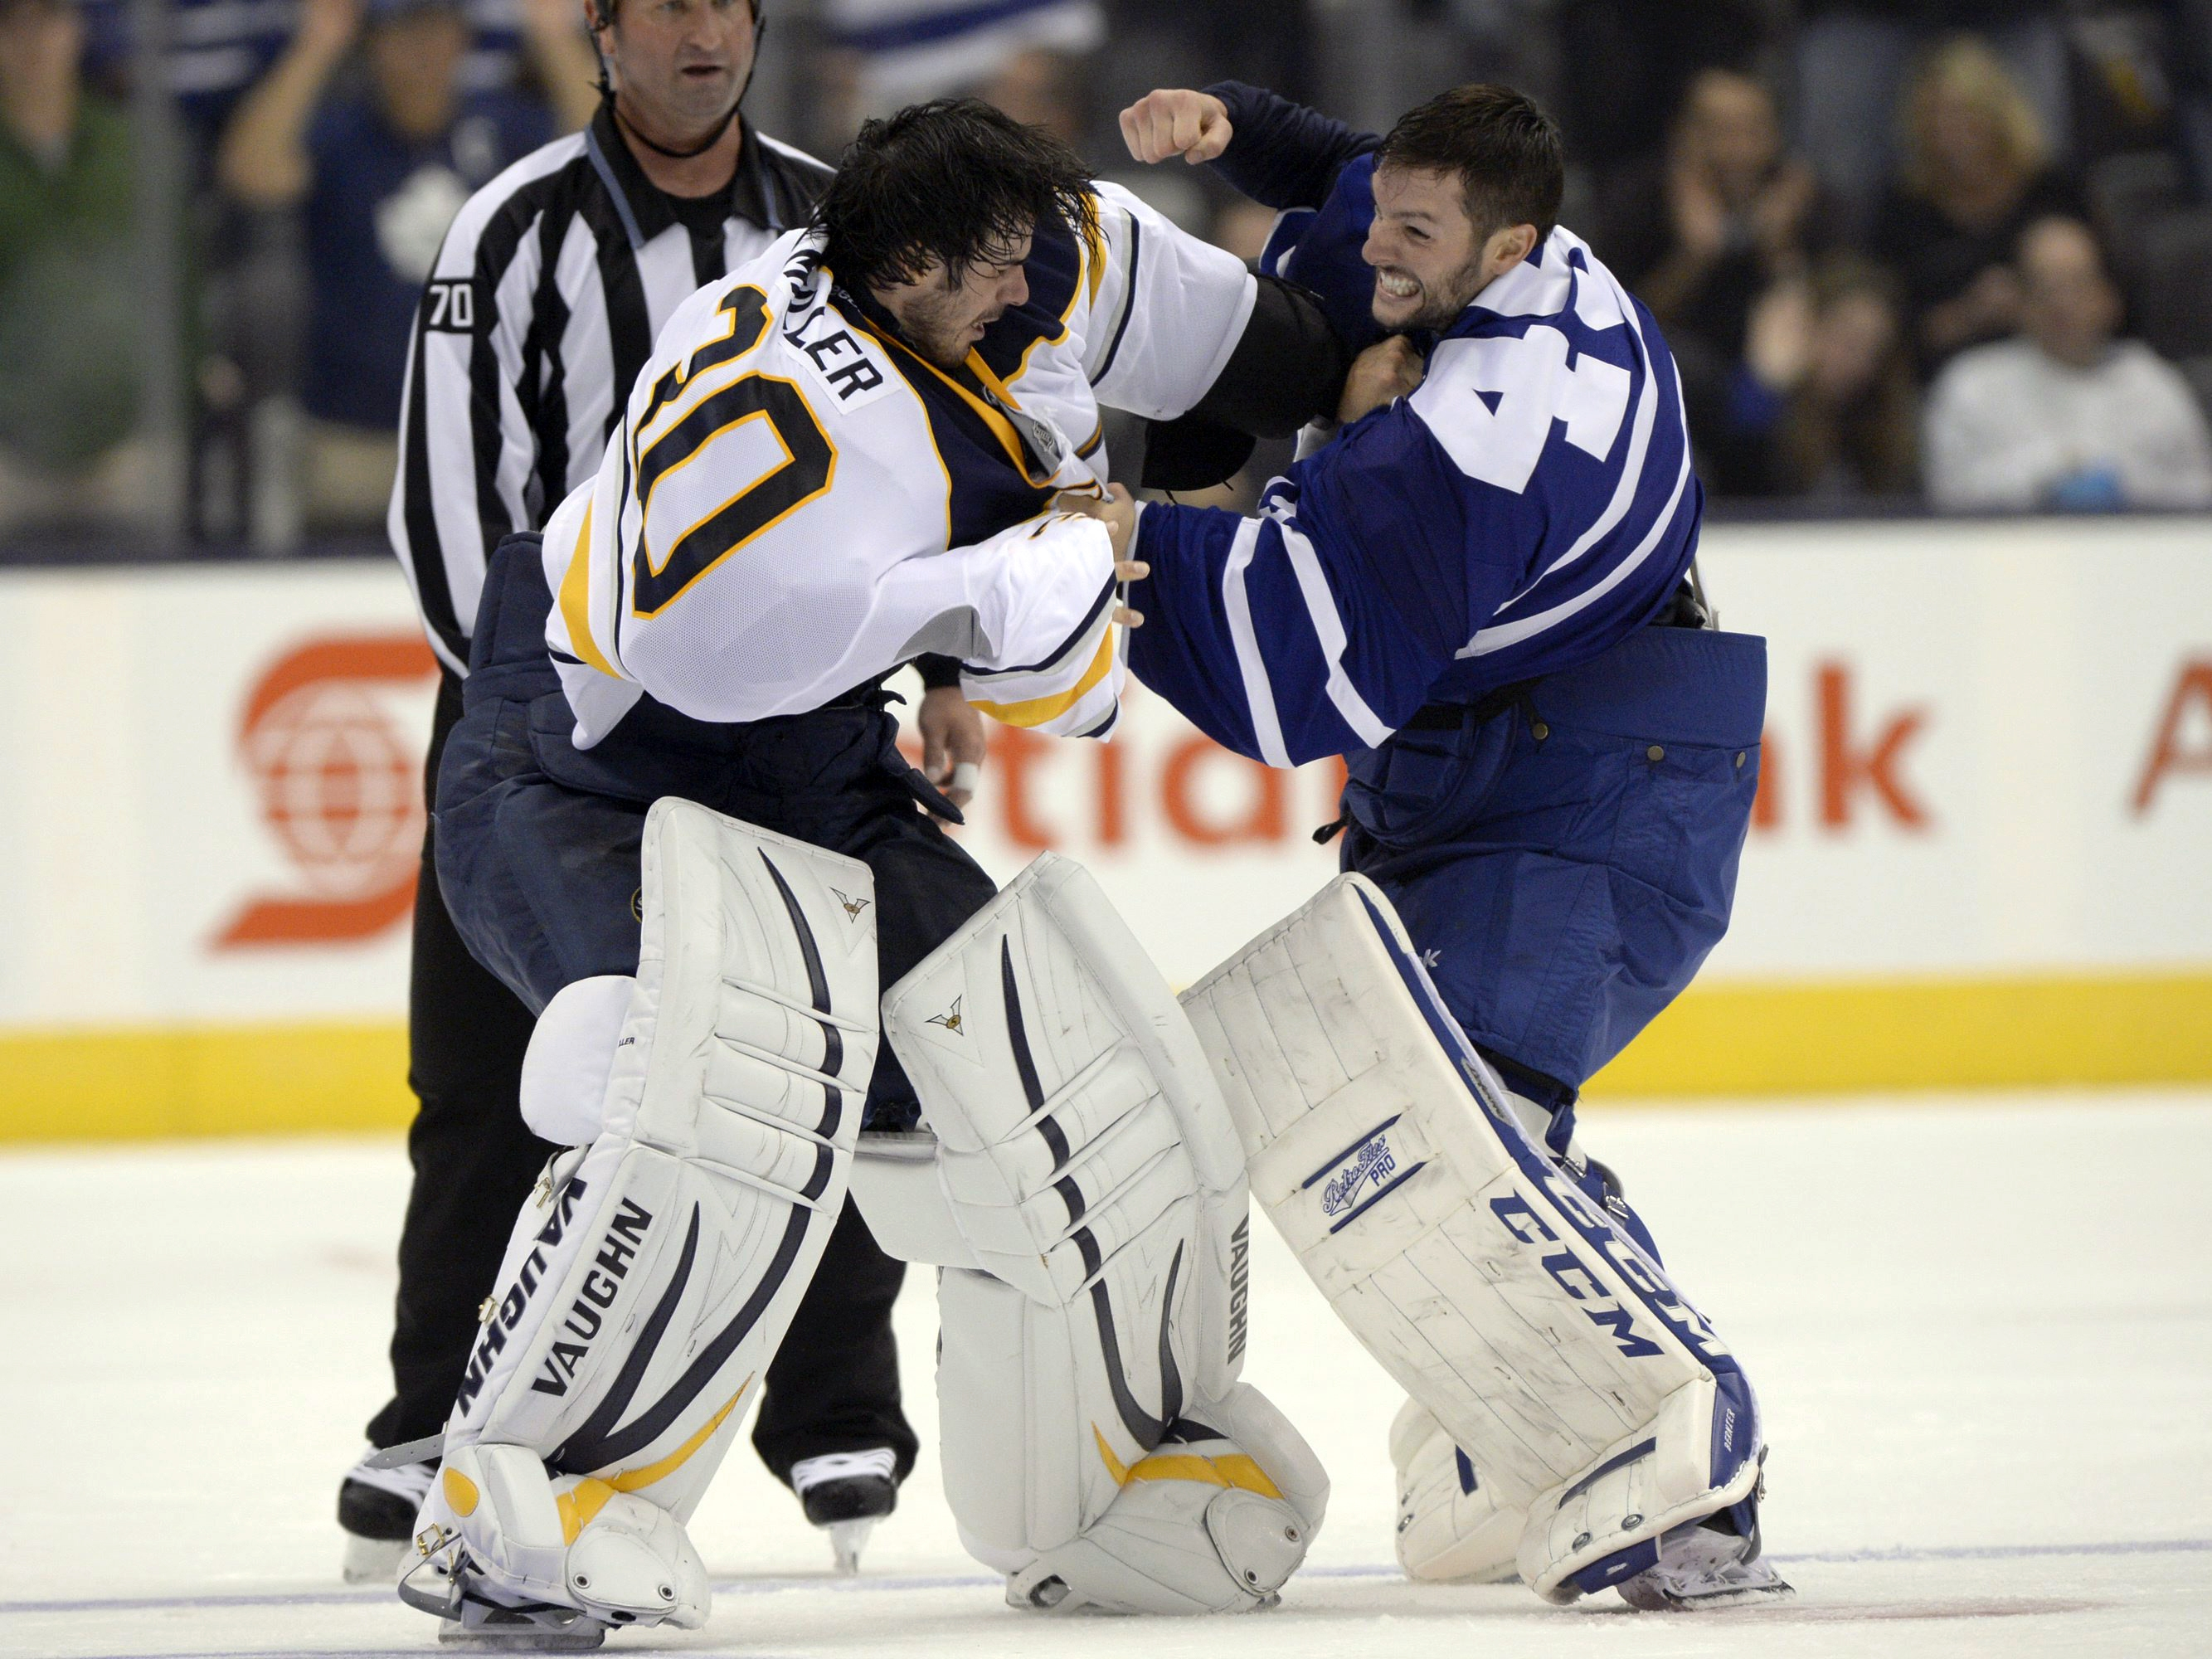 Buffalo Sabres goalie Ryan Miller fights with Toronto Maple Leafs goalie Jonathan Bernier during the third perio. (AP Photo/The Canadian Press, Frank Gunn)